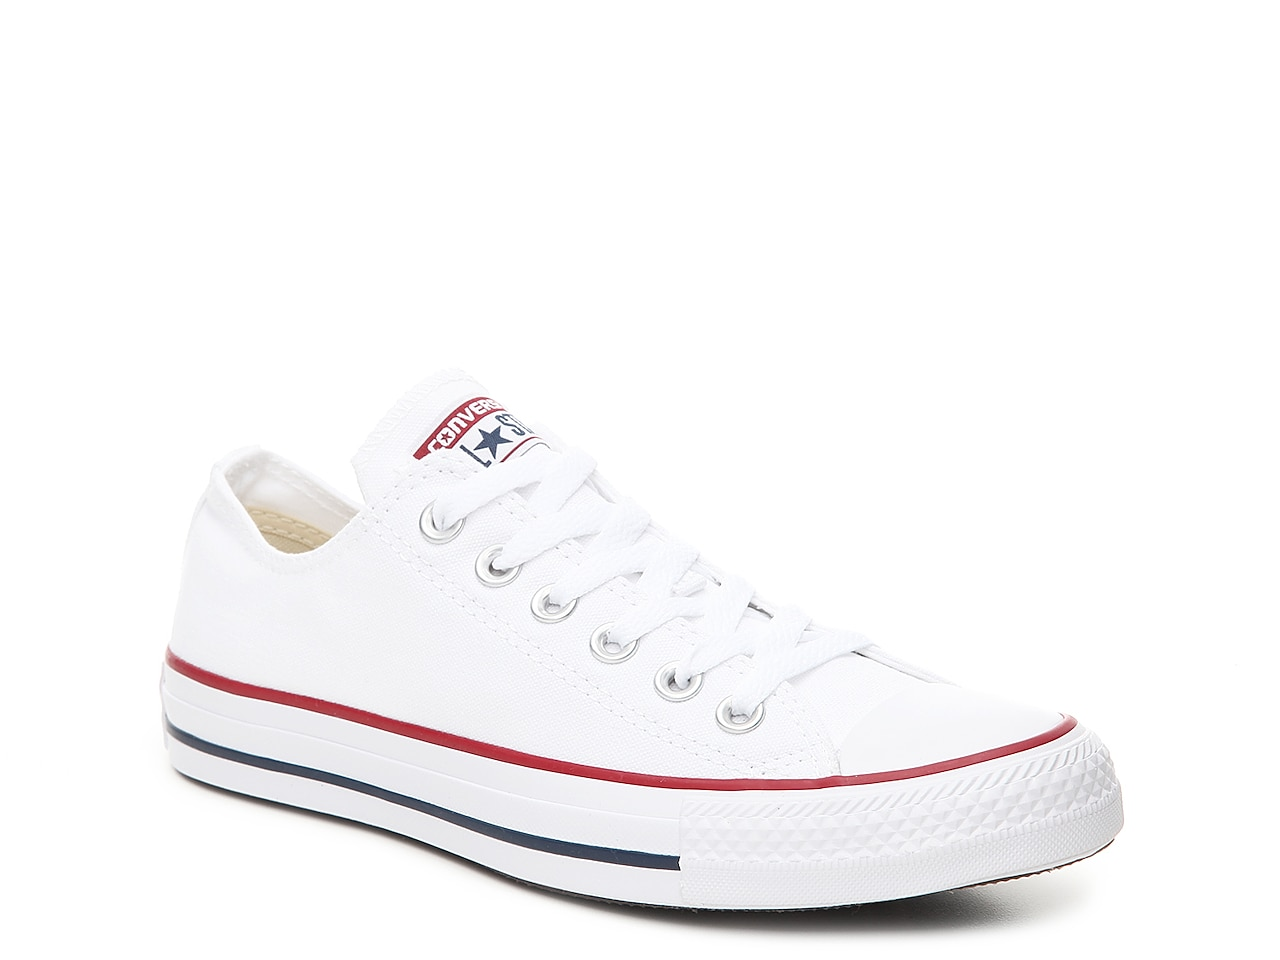 womens converse size 5 white